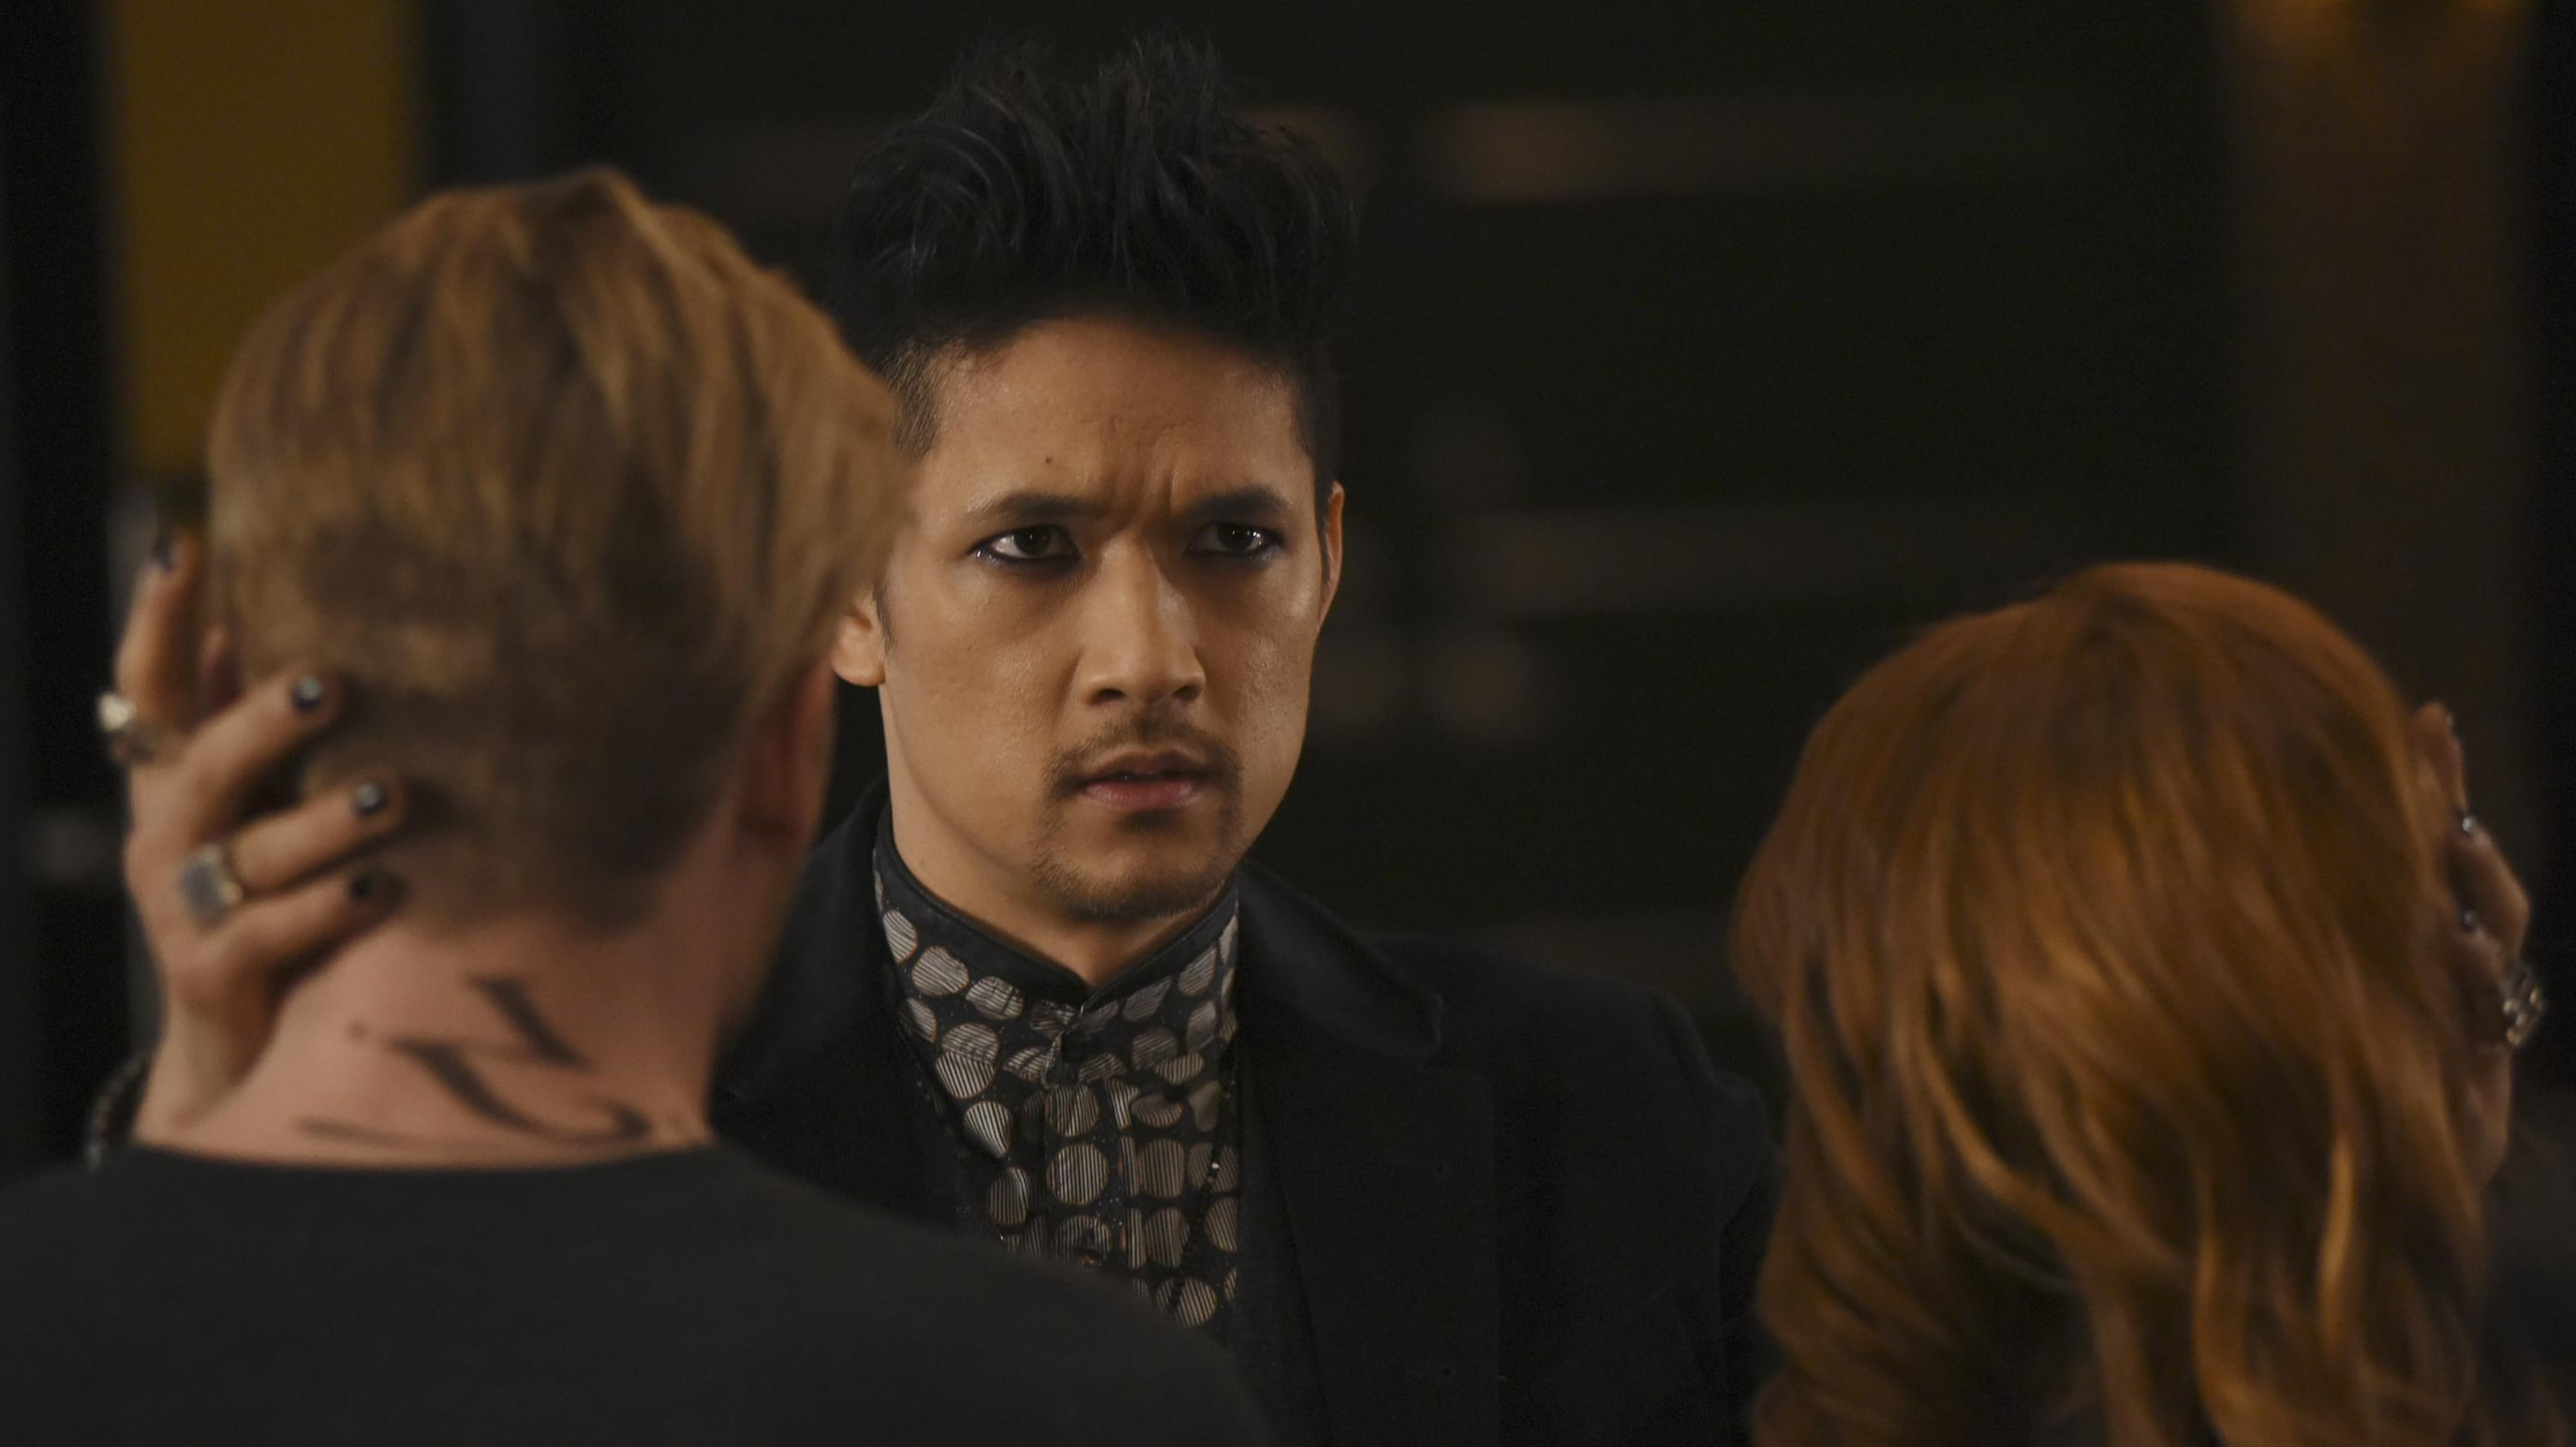 Shadowhunters - Season 2 Episode 10 : By the Light of Dawn